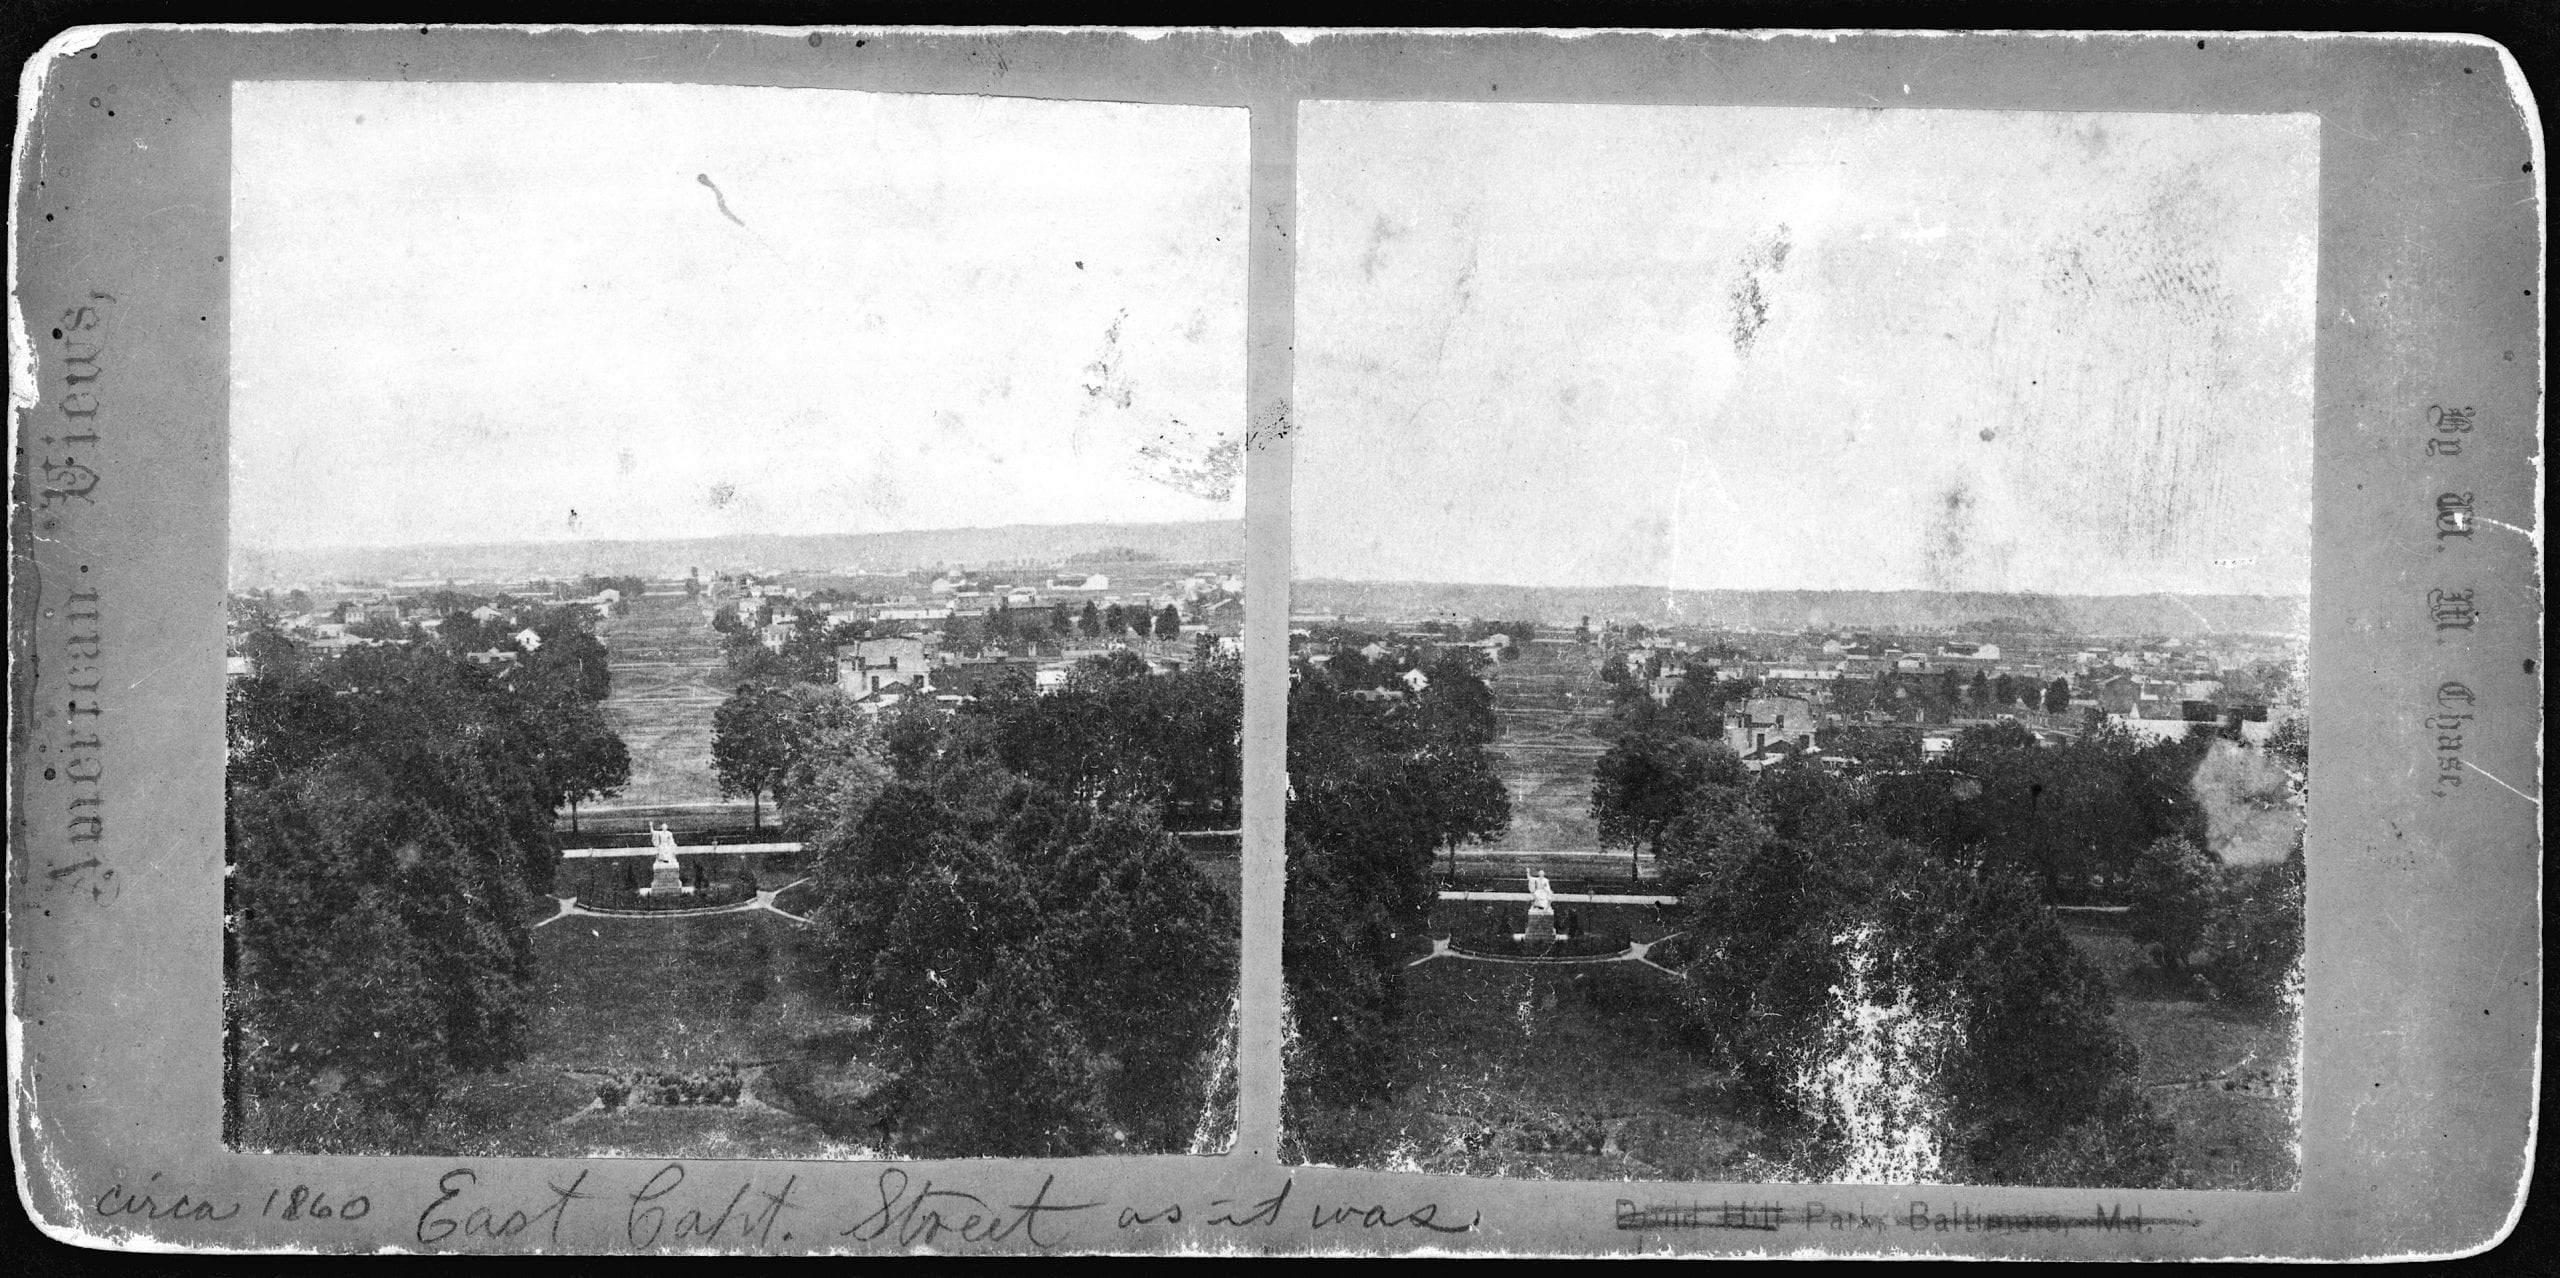 Bird's-eye view of the east Capitol grounds, including the Greenough statue of George Washington, and East Capitol Street taken from the dome of the U.S. Capitol.